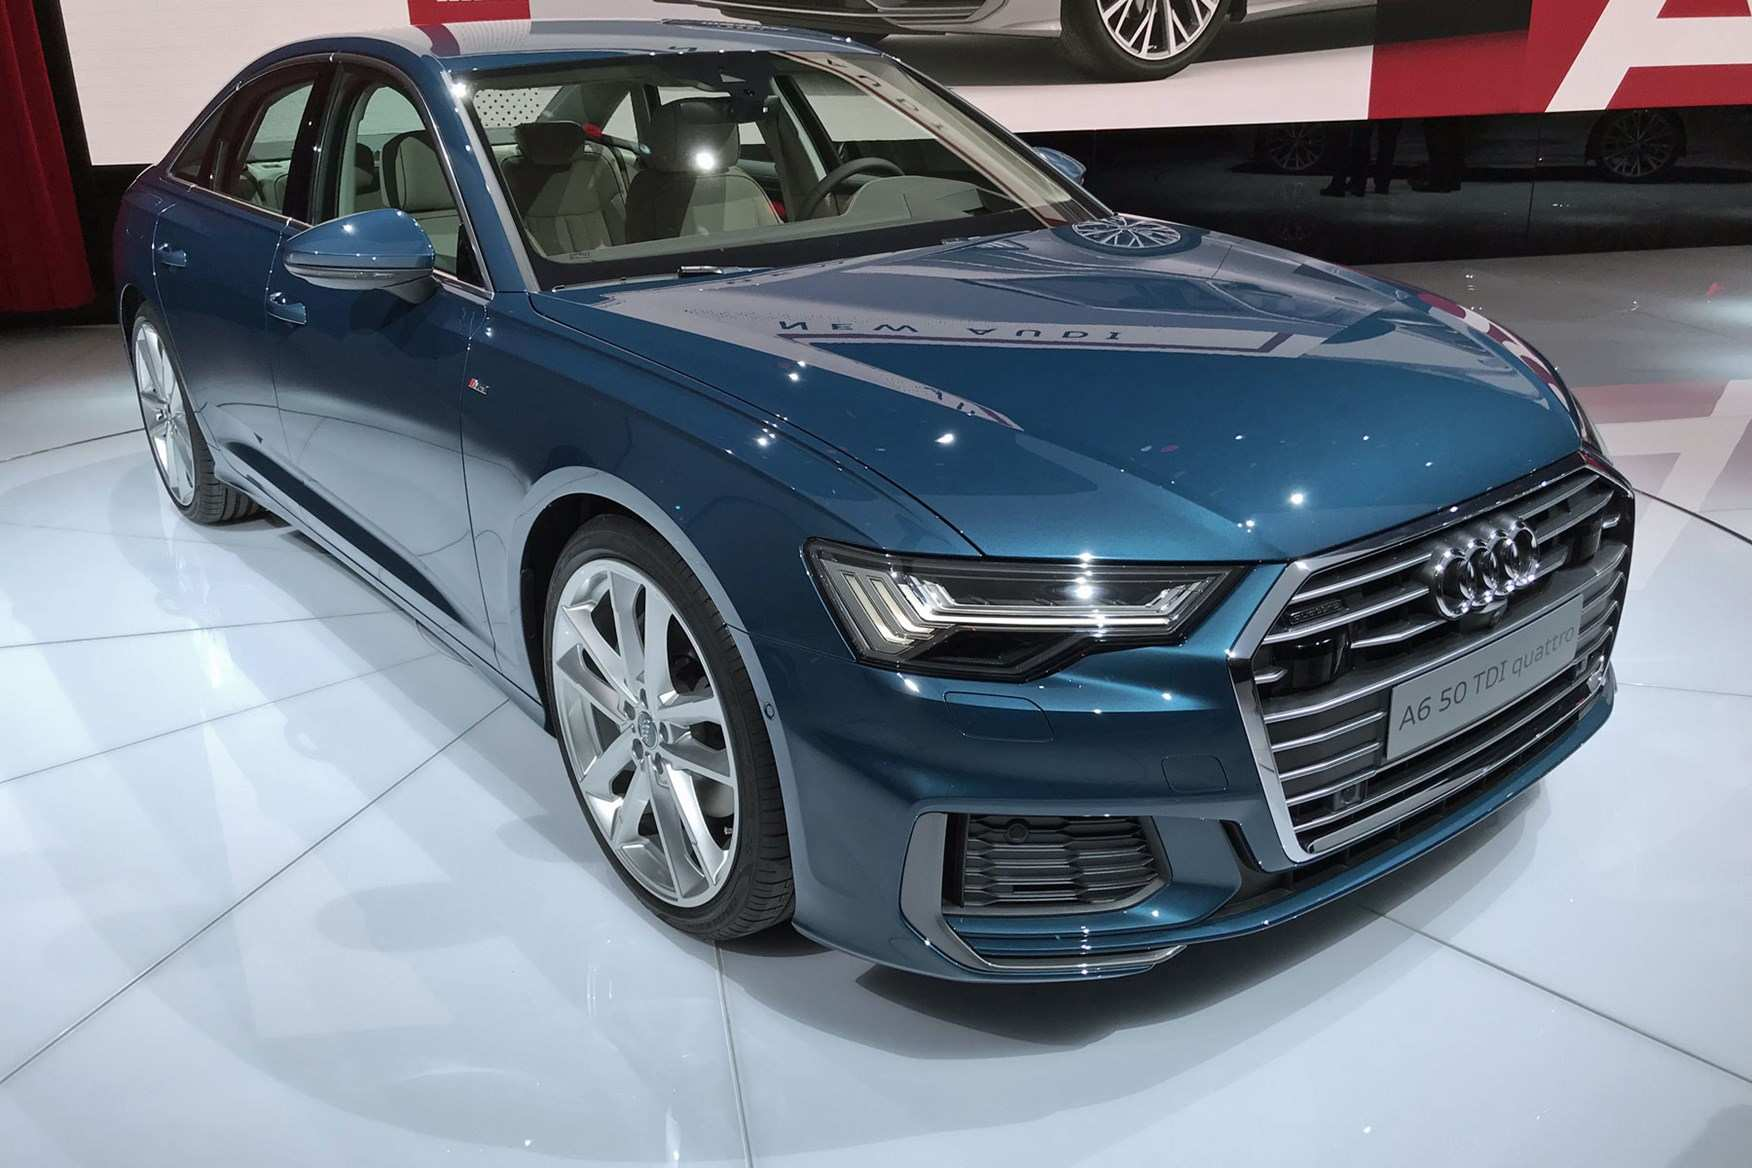 31 All New New Audi A6 S Line 2019 Picture Release Date And Review Rumors by New Audi A6 S Line 2019 Picture Release Date And Review